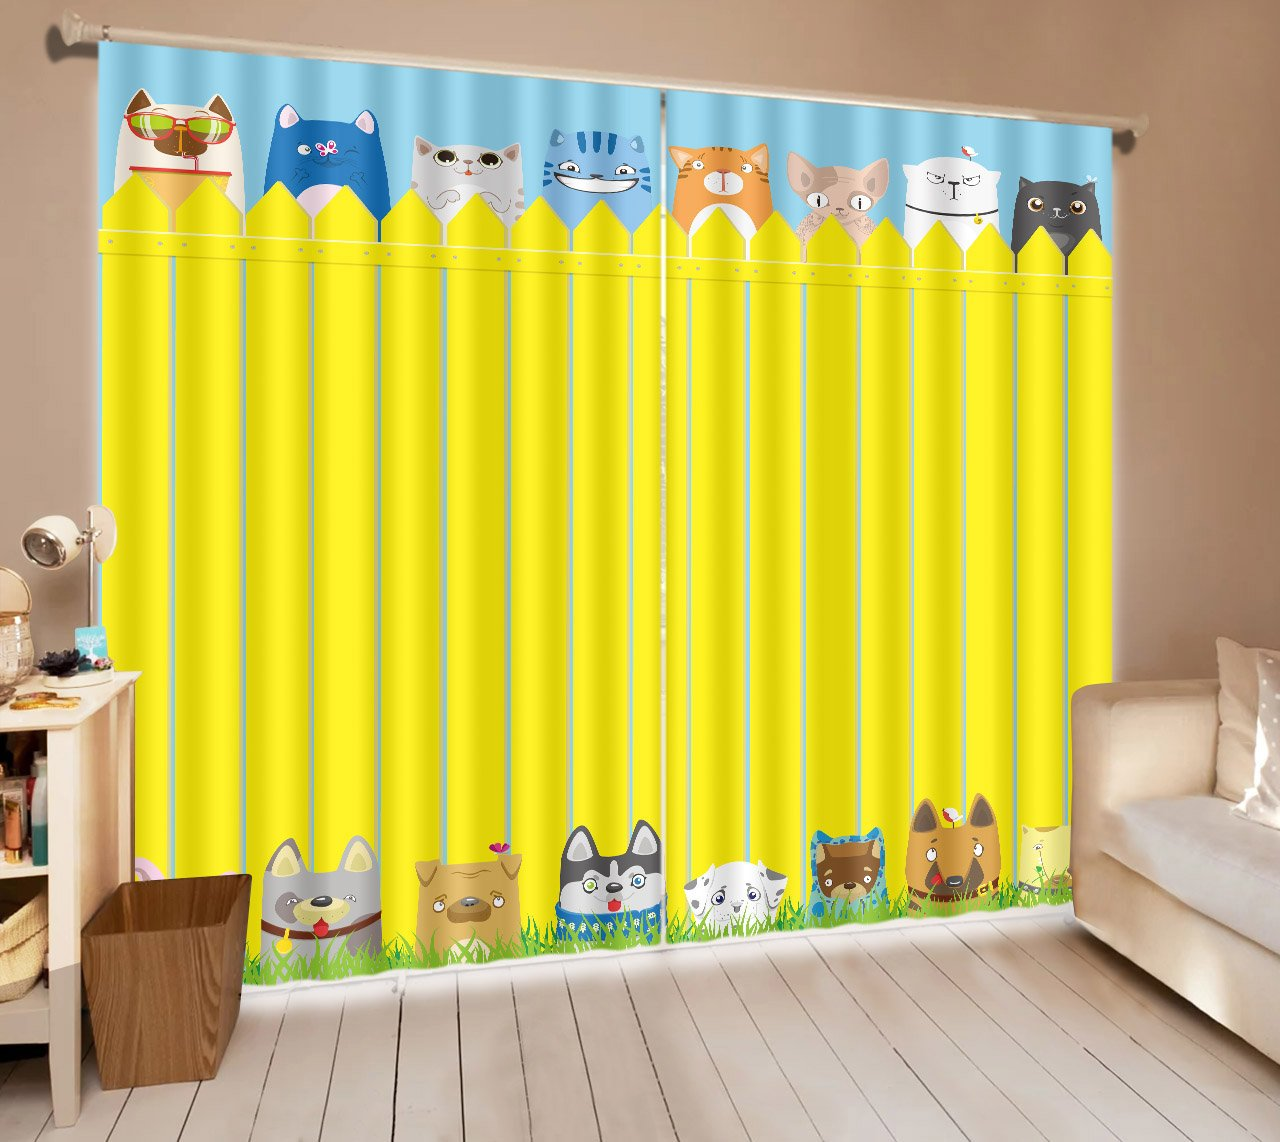 Cartoon Pet Dog Cat Theme House Decor Window Curtain by LB, Animal Cute Pet Lover for Kids Room Nursery Room, Artistic Window Treatment Panels, 118x106 Inches (2 Panels Size) , Yellow